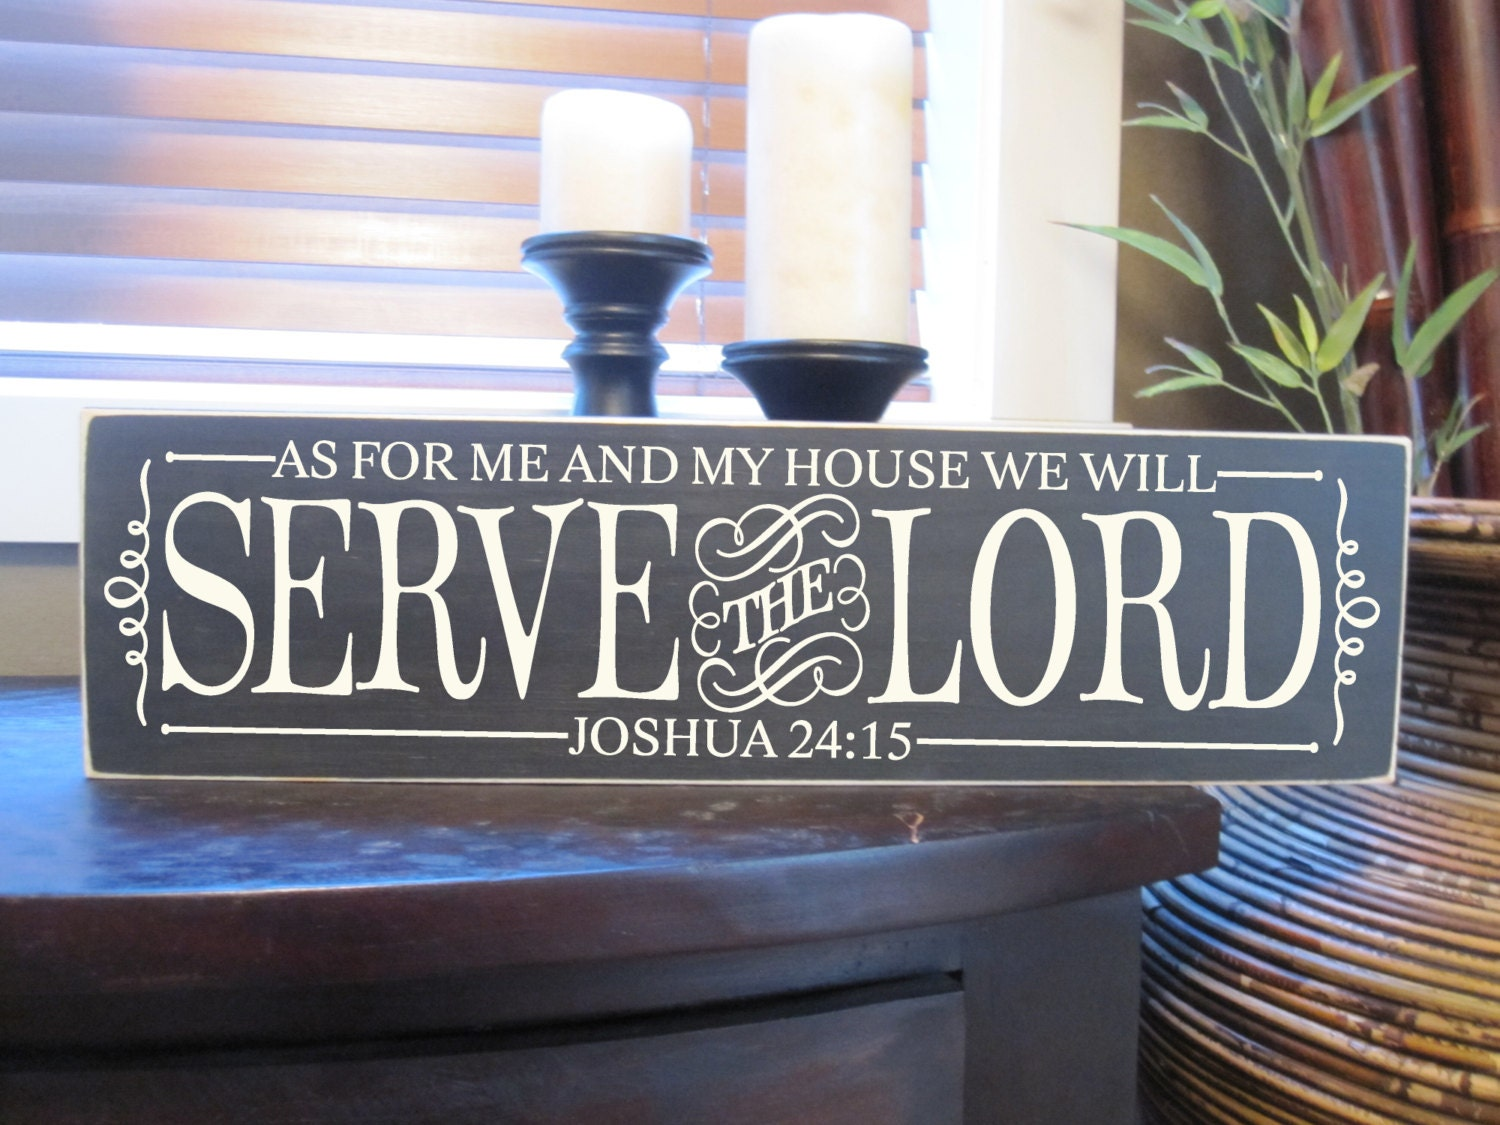 Serve the Lord , As for me and my house we will Serve the Lord, Joshua 24:15, Wood Sign, Style - HM29